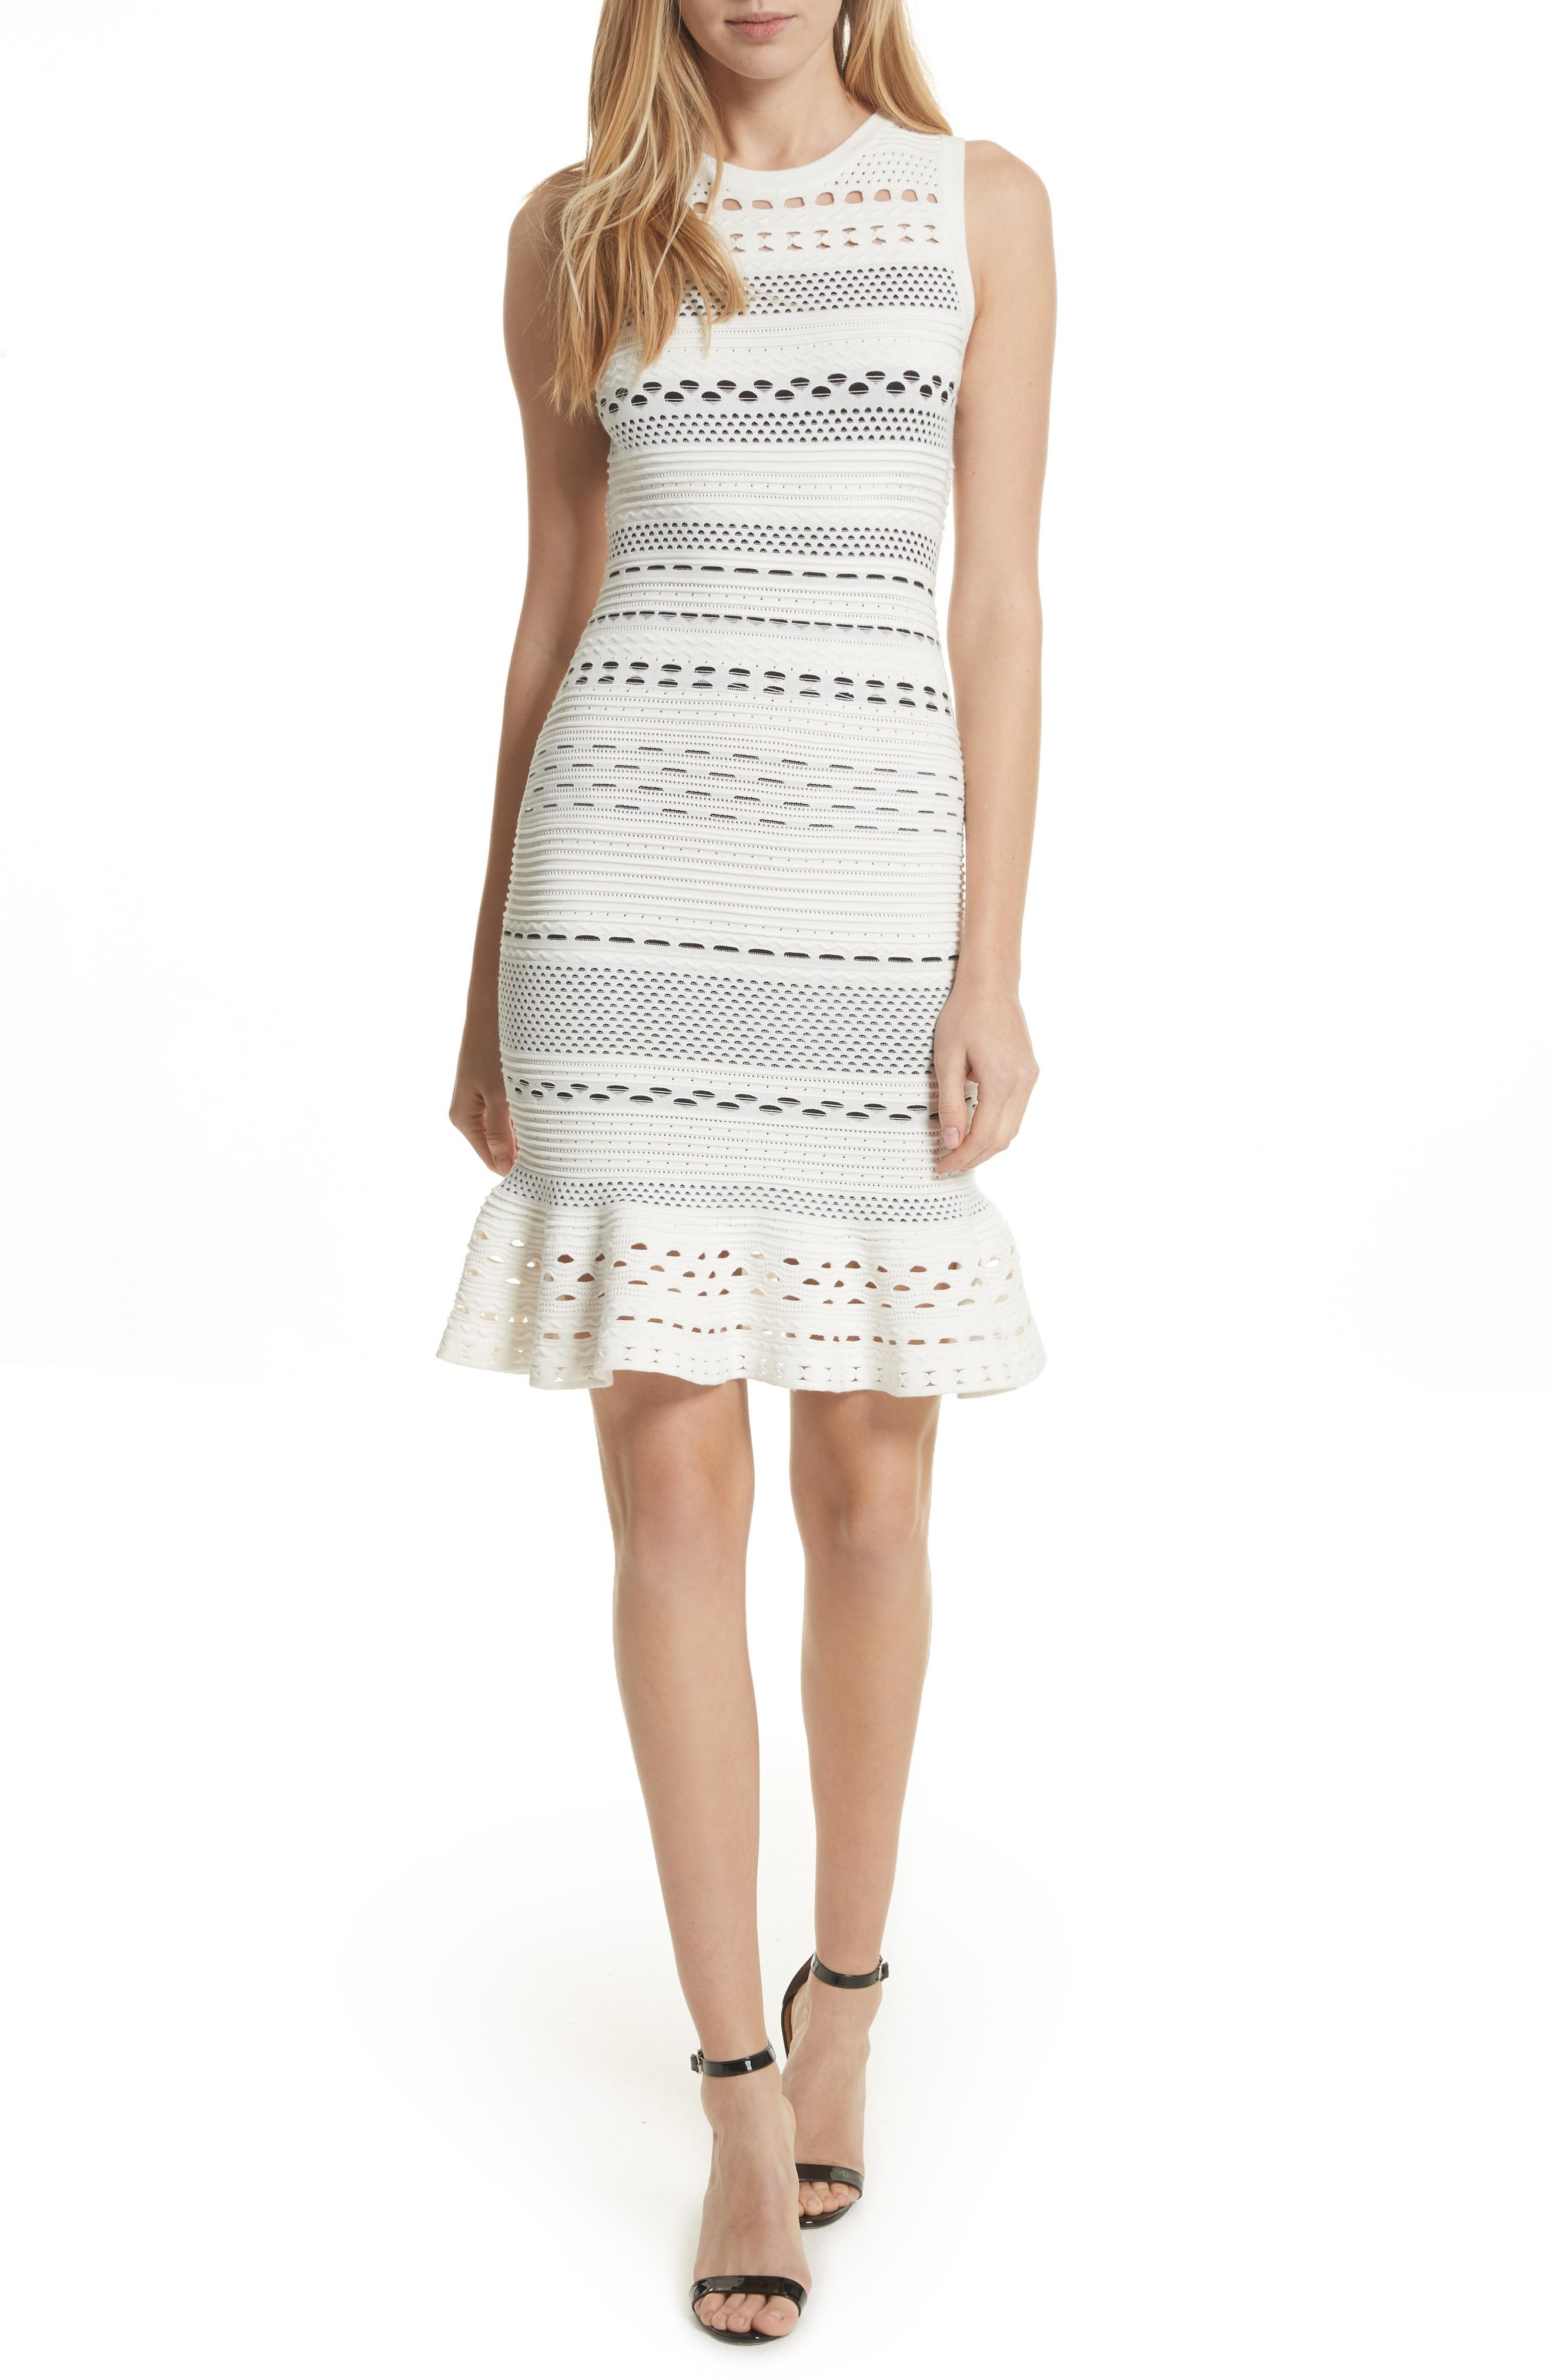 Milly Cutout Lace Knit Dress In White/ Black